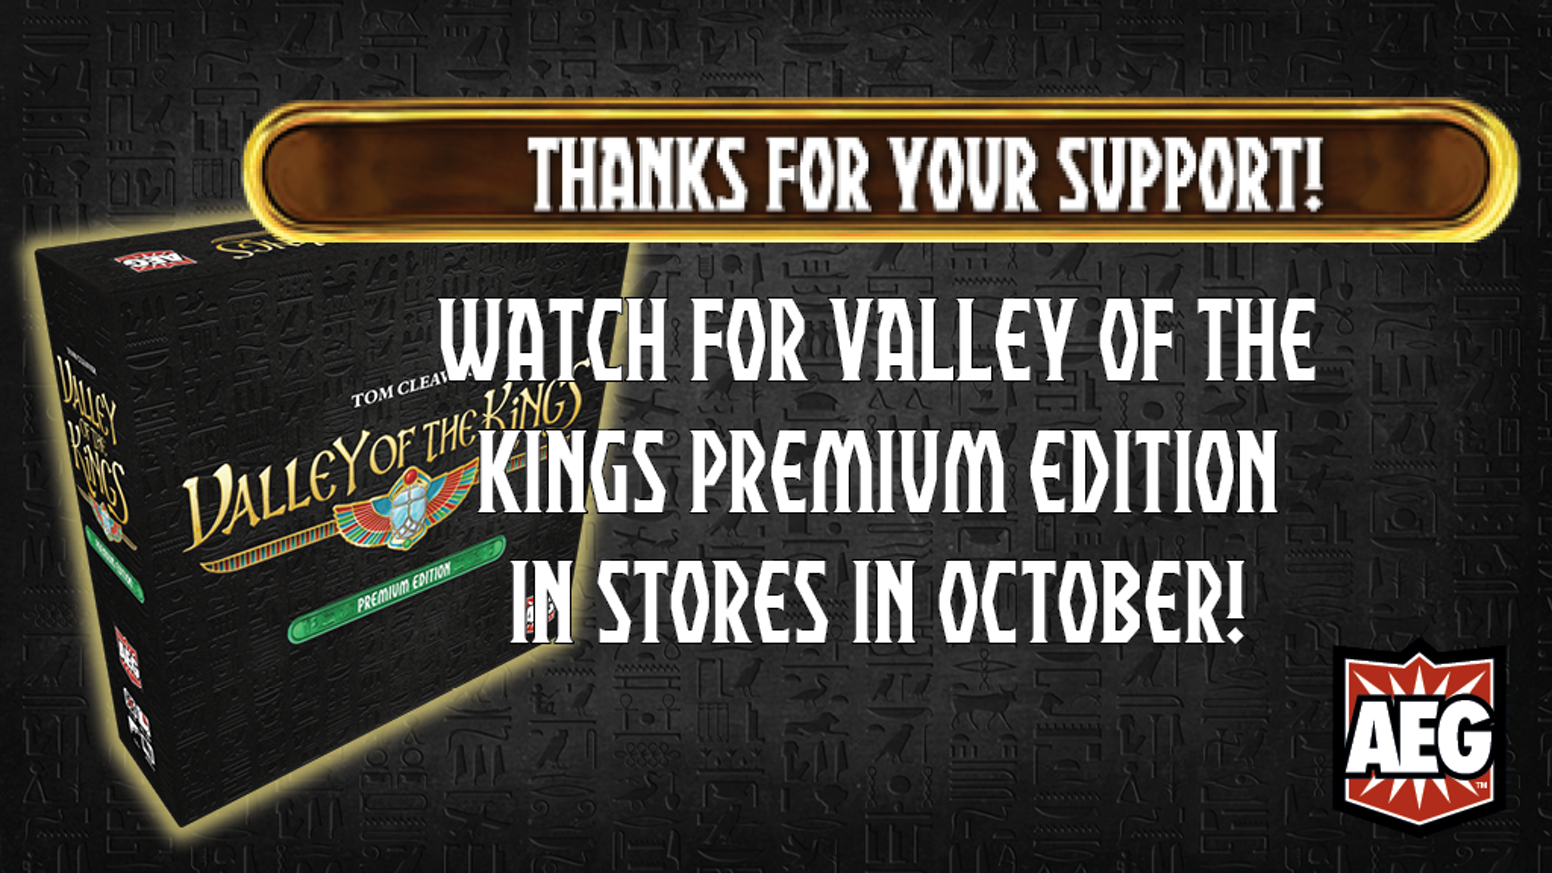 Get the entire Valley of the Kings series designed by Tom Cleaver in one deluxe box, with upgraded components and AEG Premium Sleeves!